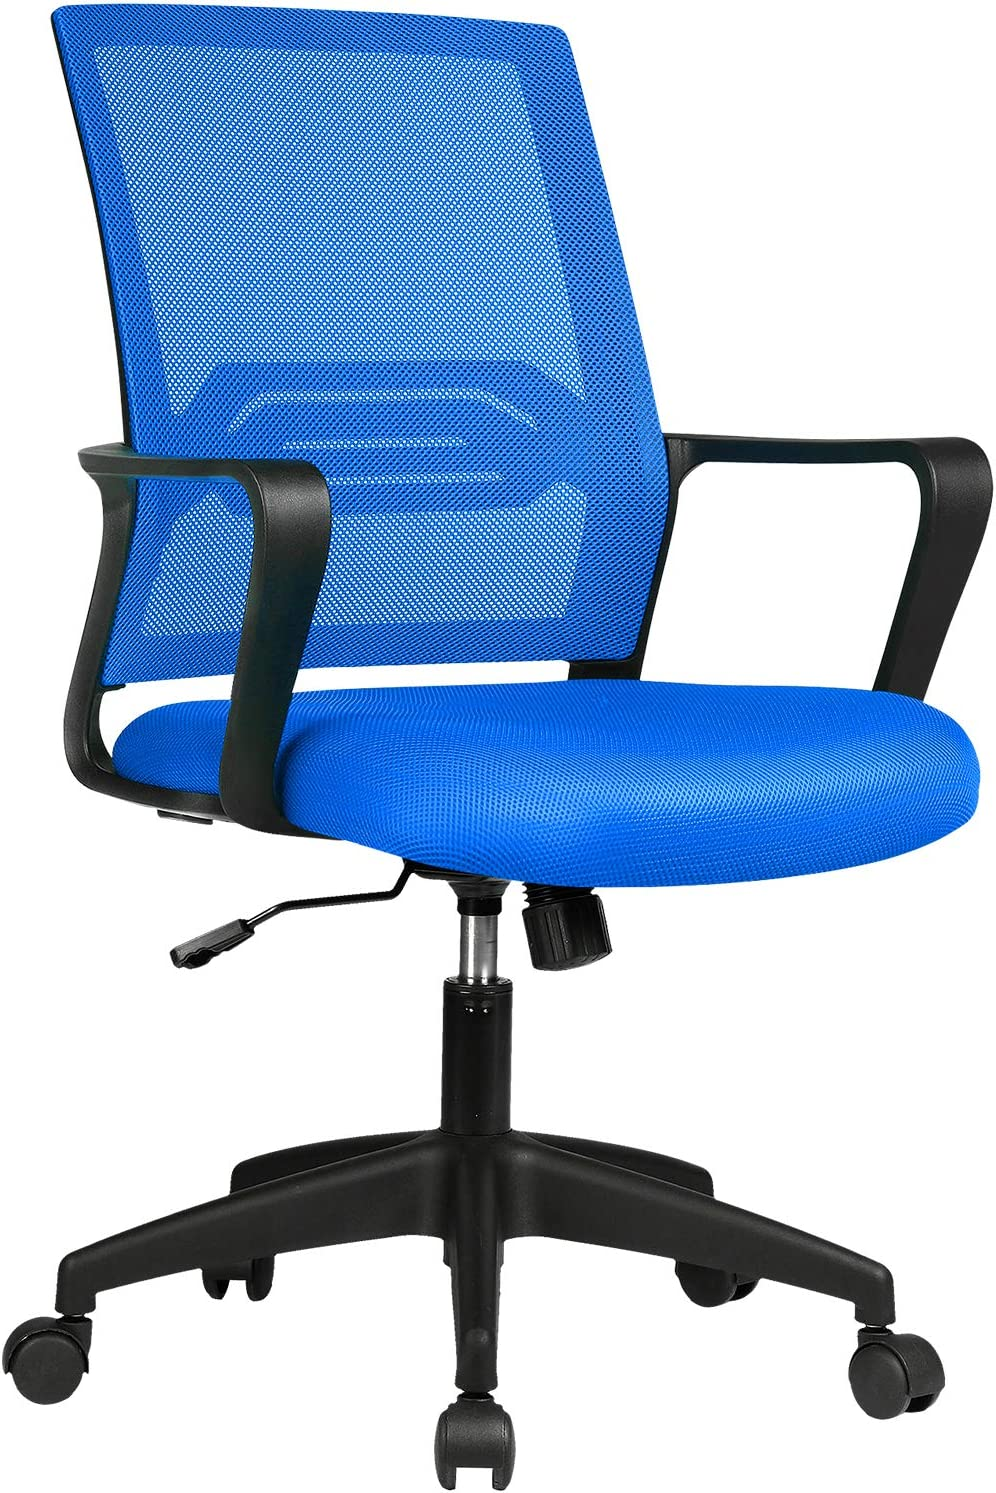 ComHoma Office Chair Ergonomic Desk Chair Mesh Computer Chair Mid Back Mesh Home Office Swivel Chair, Modern Executive Chair with Armrests Lumbar Support(Blue),